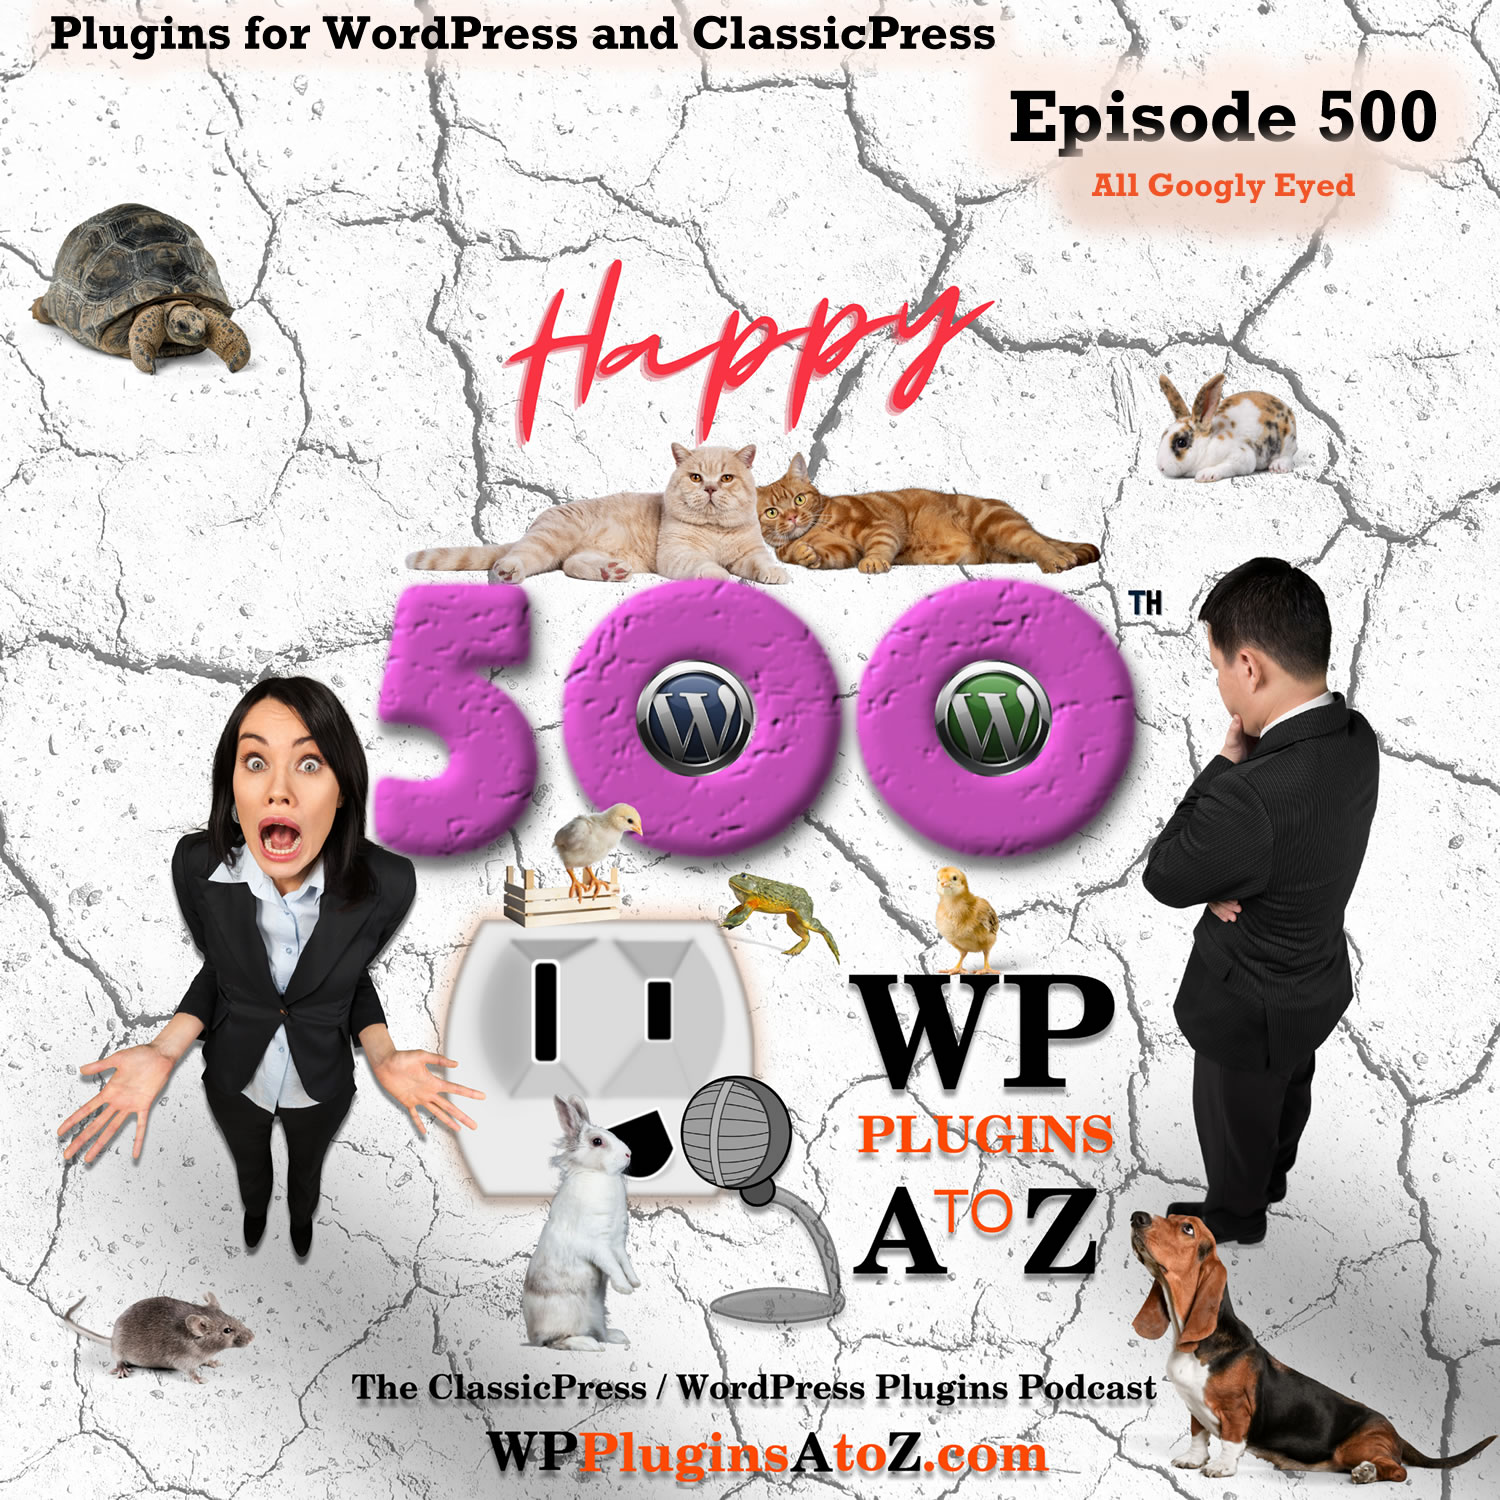 All Googly Eyed It's Episode 500 - We have plugins for Bitcoin, Animated Menu, Getting Sticky, Media Organization, Crypto Conversion, Multi Currency ....., and ClassicPress Options. It's all coming up on WordPress Plugins A-Z! Animated Hamburger for Elementor, Accept Bitcoin, Crypto Converter ⚡ Widget, All-in-one Floating Contact Form, Call, Chat, and 50+ Social Icon Tabs – My Sticky Elements, Multi Currency for WooCommerce – The best free currency exchange plugin – Run smoothly on WooCommerce 4.x, Bulk edit image alt tag, caption & description – WordPress Media Library Helper by Codexin